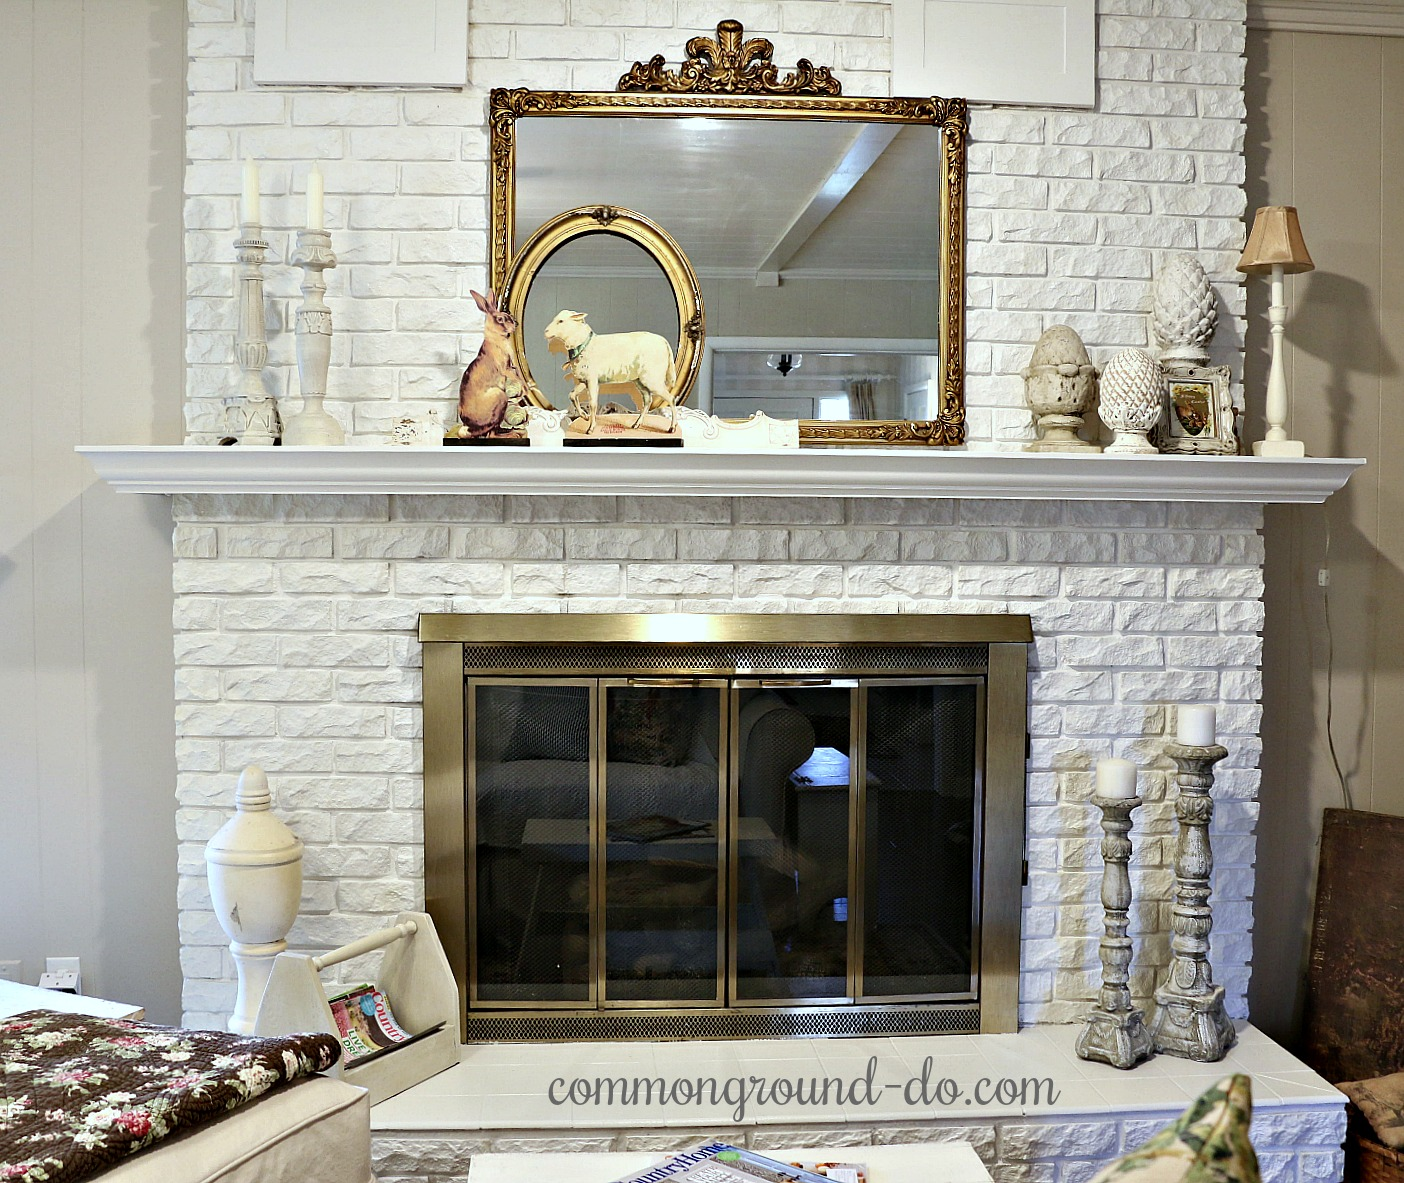 Hearth Room: Common Ground : An Easter Mantel In The Hearth Room